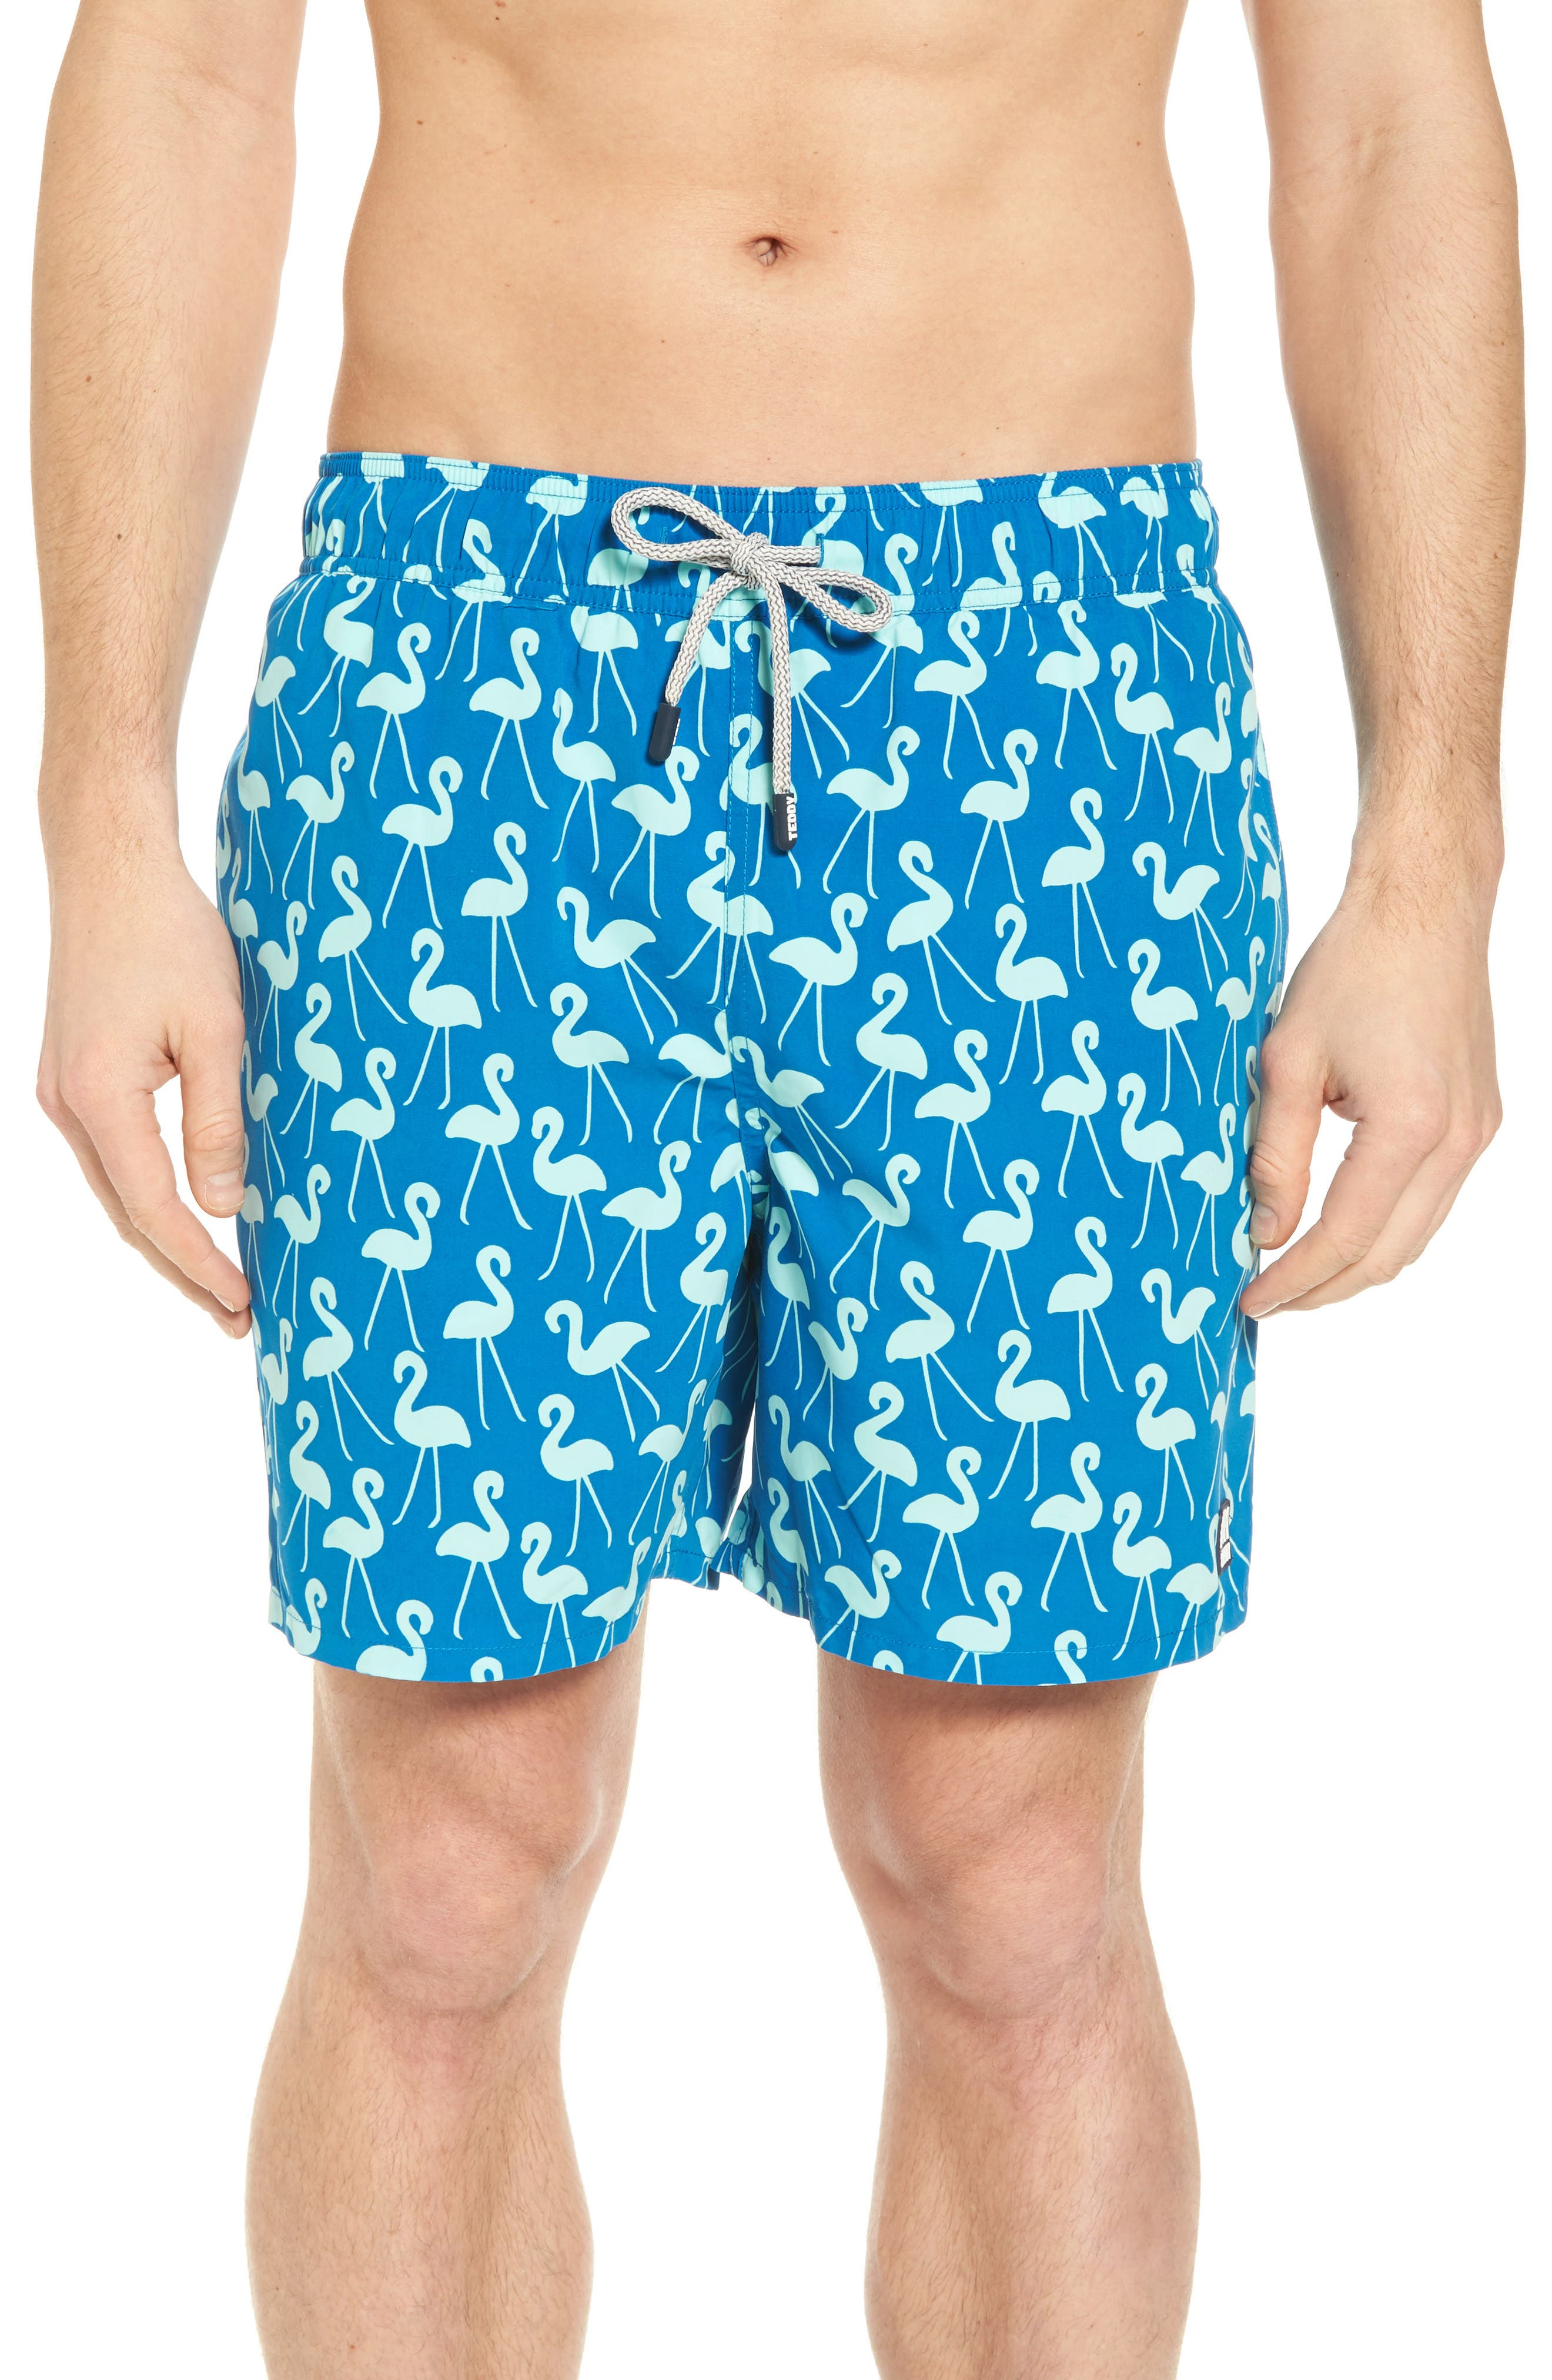 Flamingo Print Swim Trunks,                         Main,                         color, Sky Blue